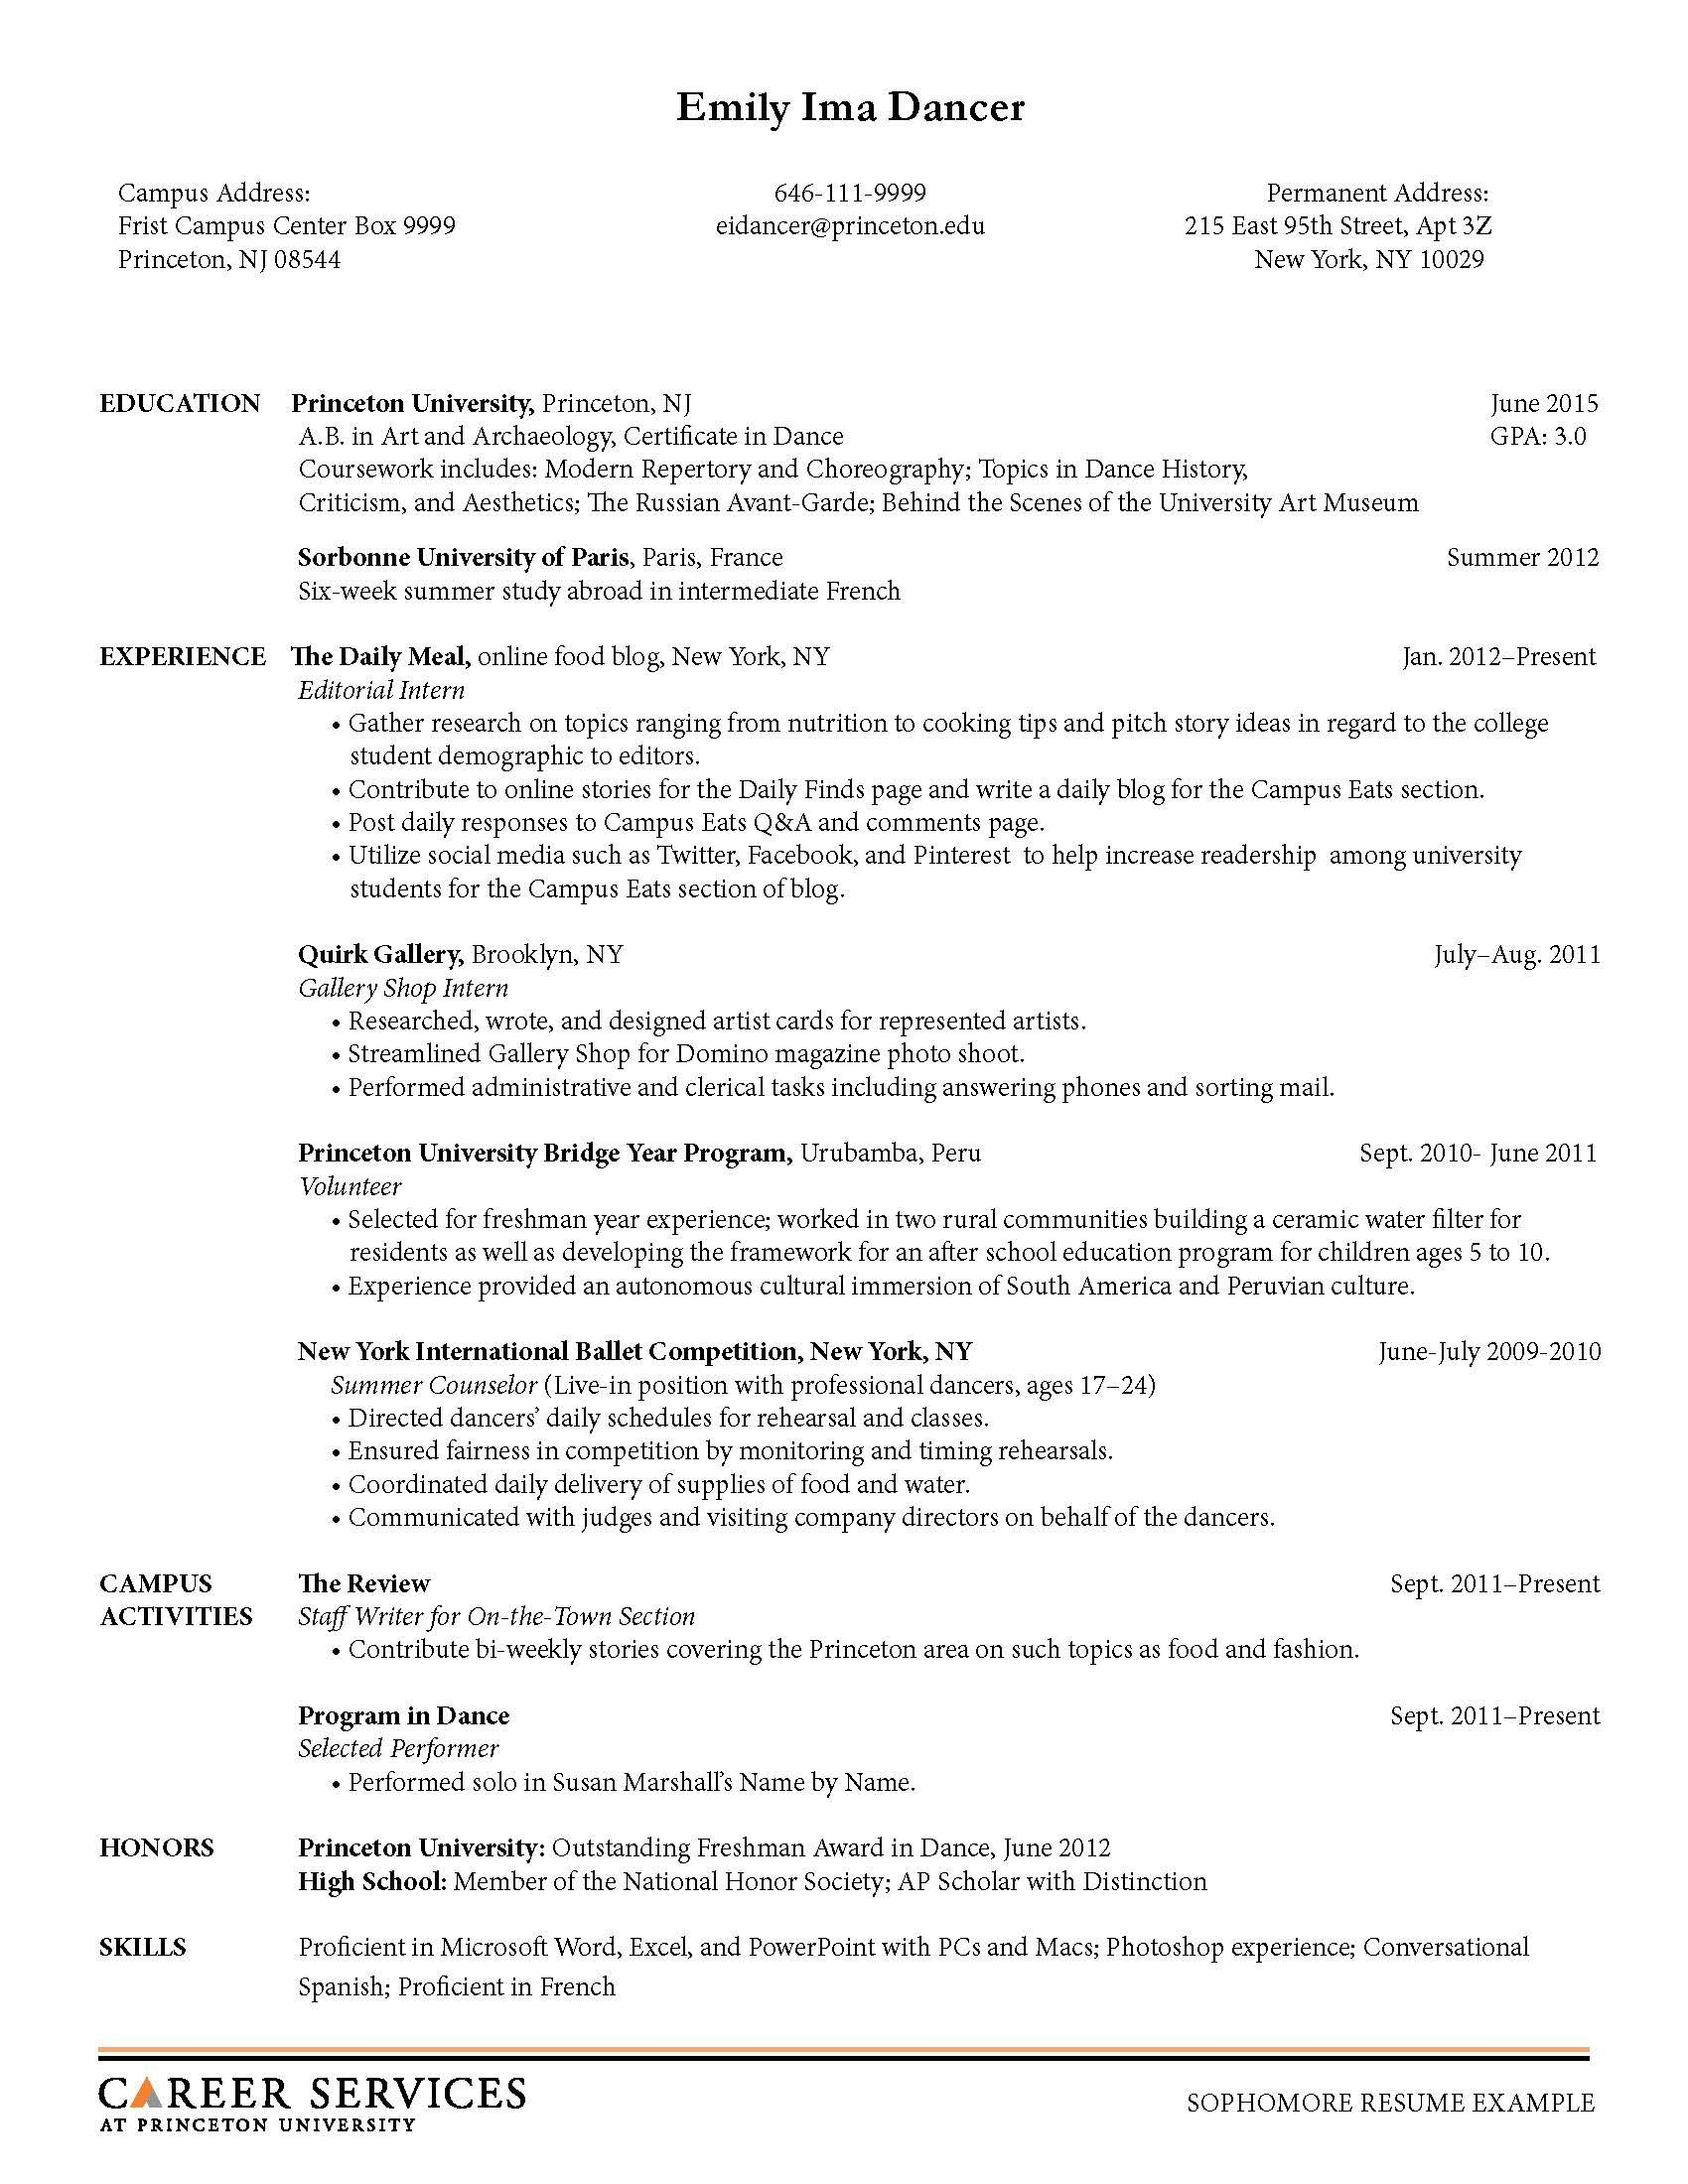 Picnictoimpeachus  Winning Sample Resume Resume And Career On Pinterest With Exciting Project Manager Resume Example Besides Writing An Objective For A Resume Furthermore Ministry Resume With Attractive Er Nurse Resume Also Creating Resume In Addition It Professional Resume And Where Can I Print My Resume As Well As Sample Business Analyst Resume Additionally Things To Put On Resume From Pinterestcom With Picnictoimpeachus  Exciting Sample Resume Resume And Career On Pinterest With Attractive Project Manager Resume Example Besides Writing An Objective For A Resume Furthermore Ministry Resume And Winning Er Nurse Resume Also Creating Resume In Addition It Professional Resume From Pinterestcom